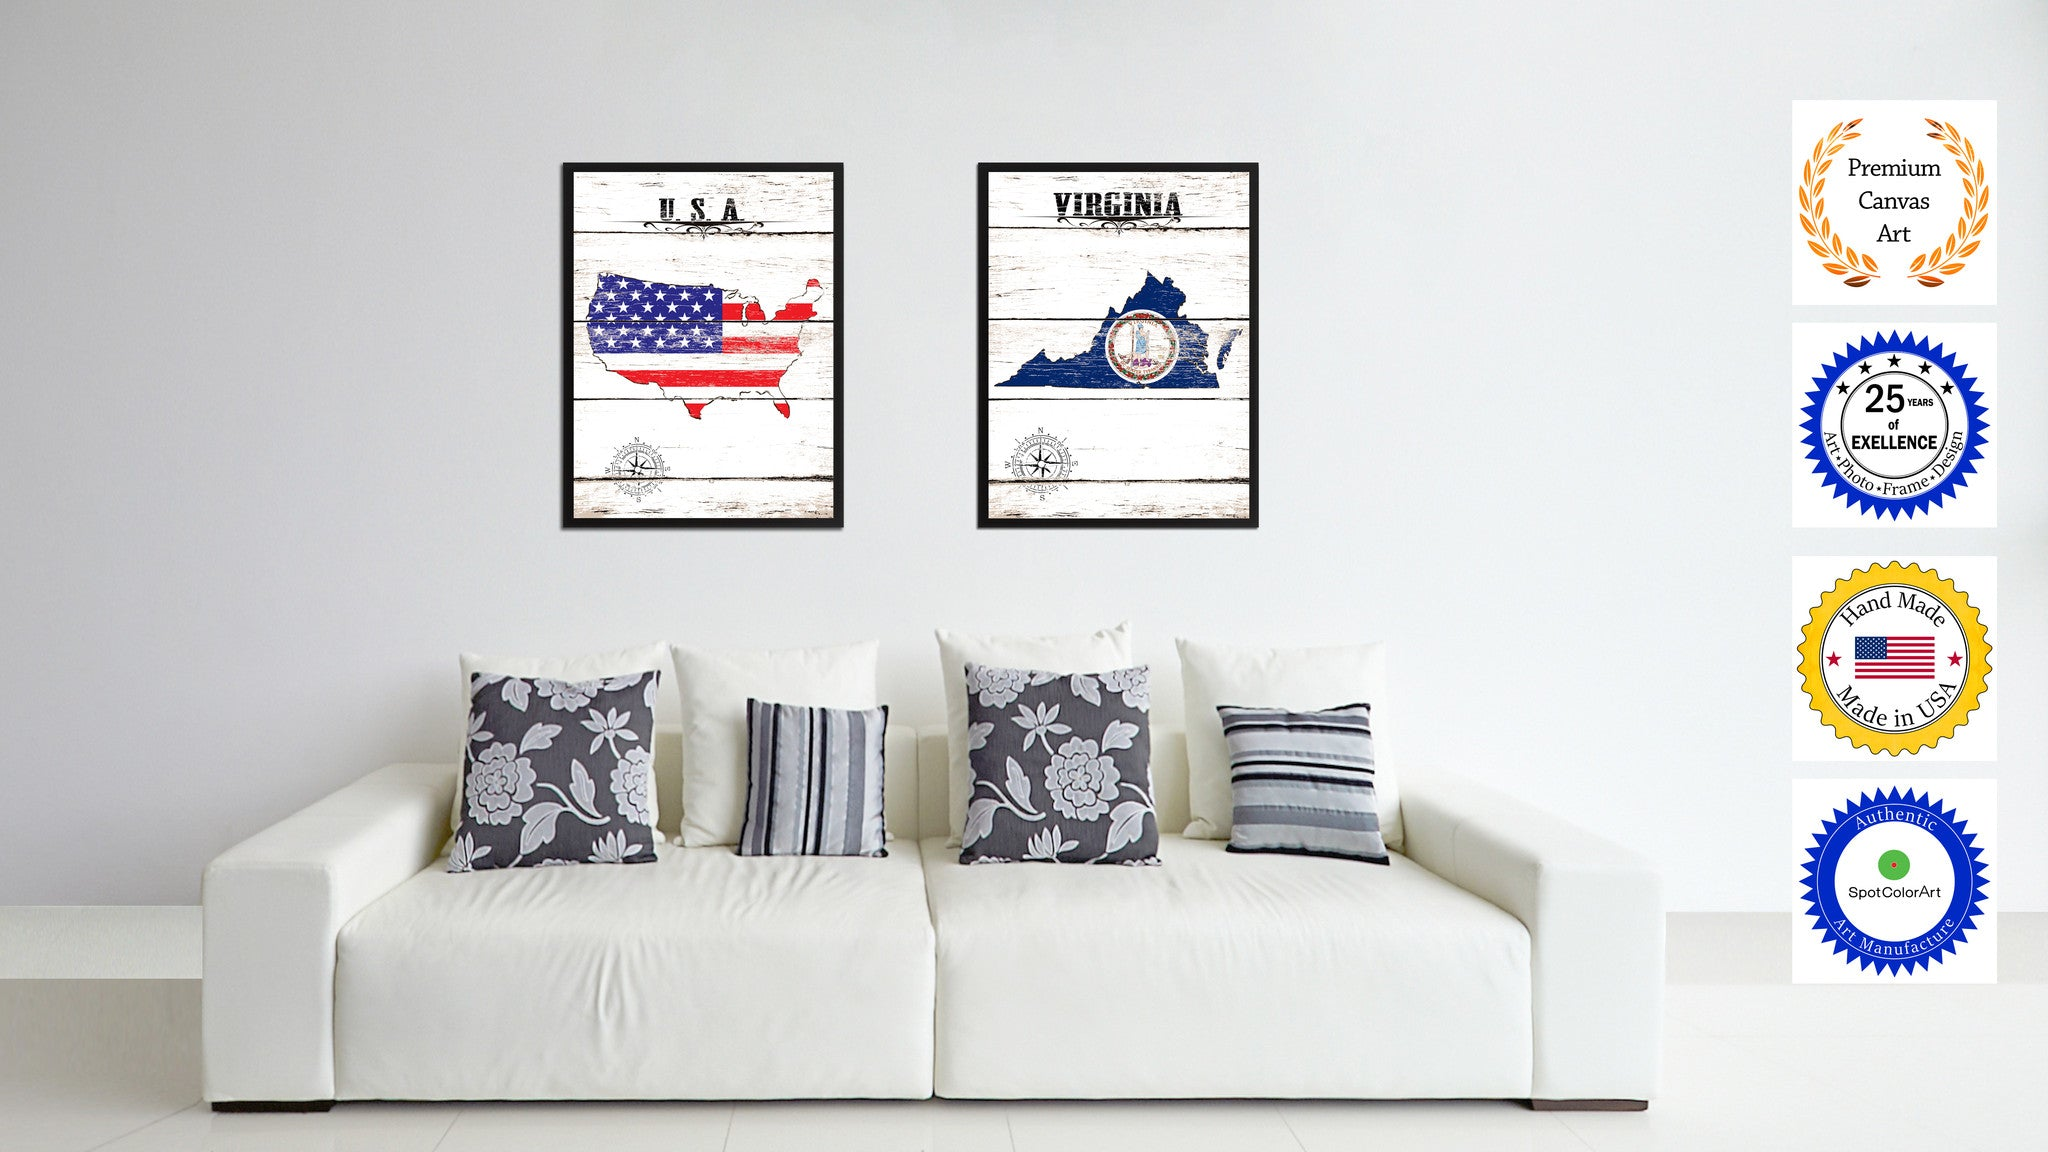 Virginia State Flag Gifts Home Decor Wall Art Canvas Print Picture Frames